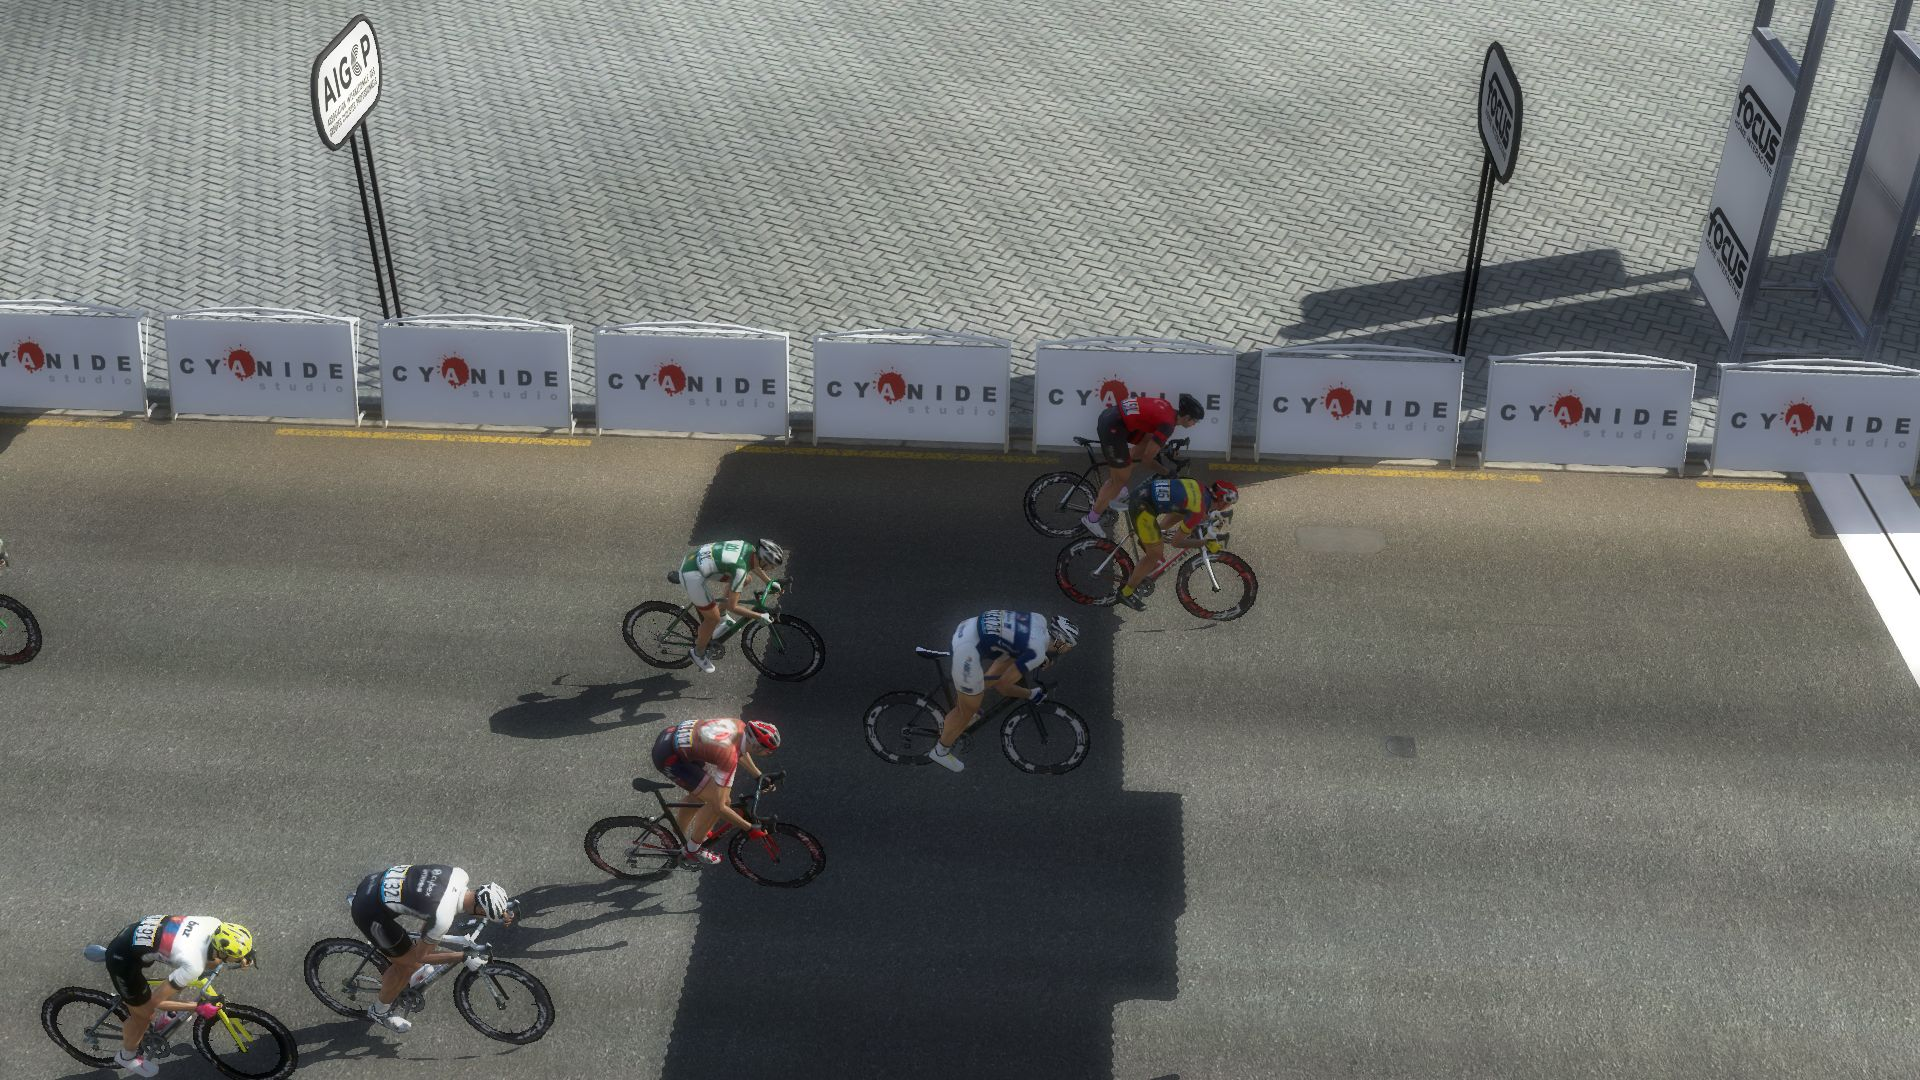 pcmdaily.com/images/mg/2019/Races/C2HC/Eritrea/TOES1%2021.jpg